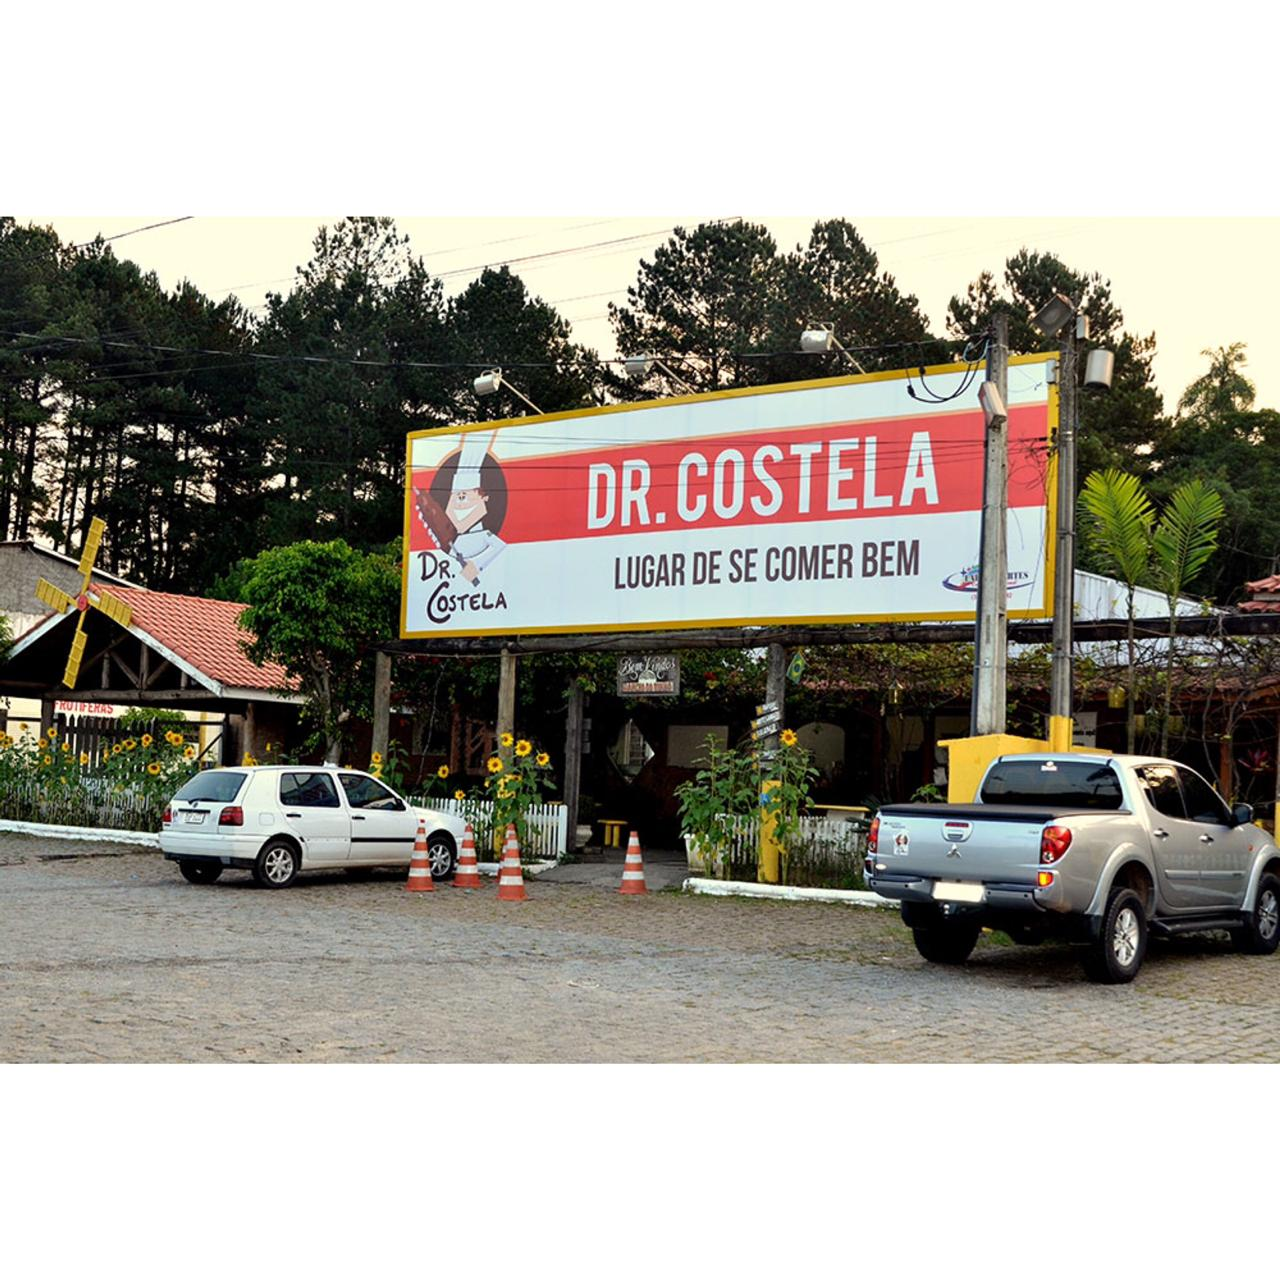 Dr. Costela